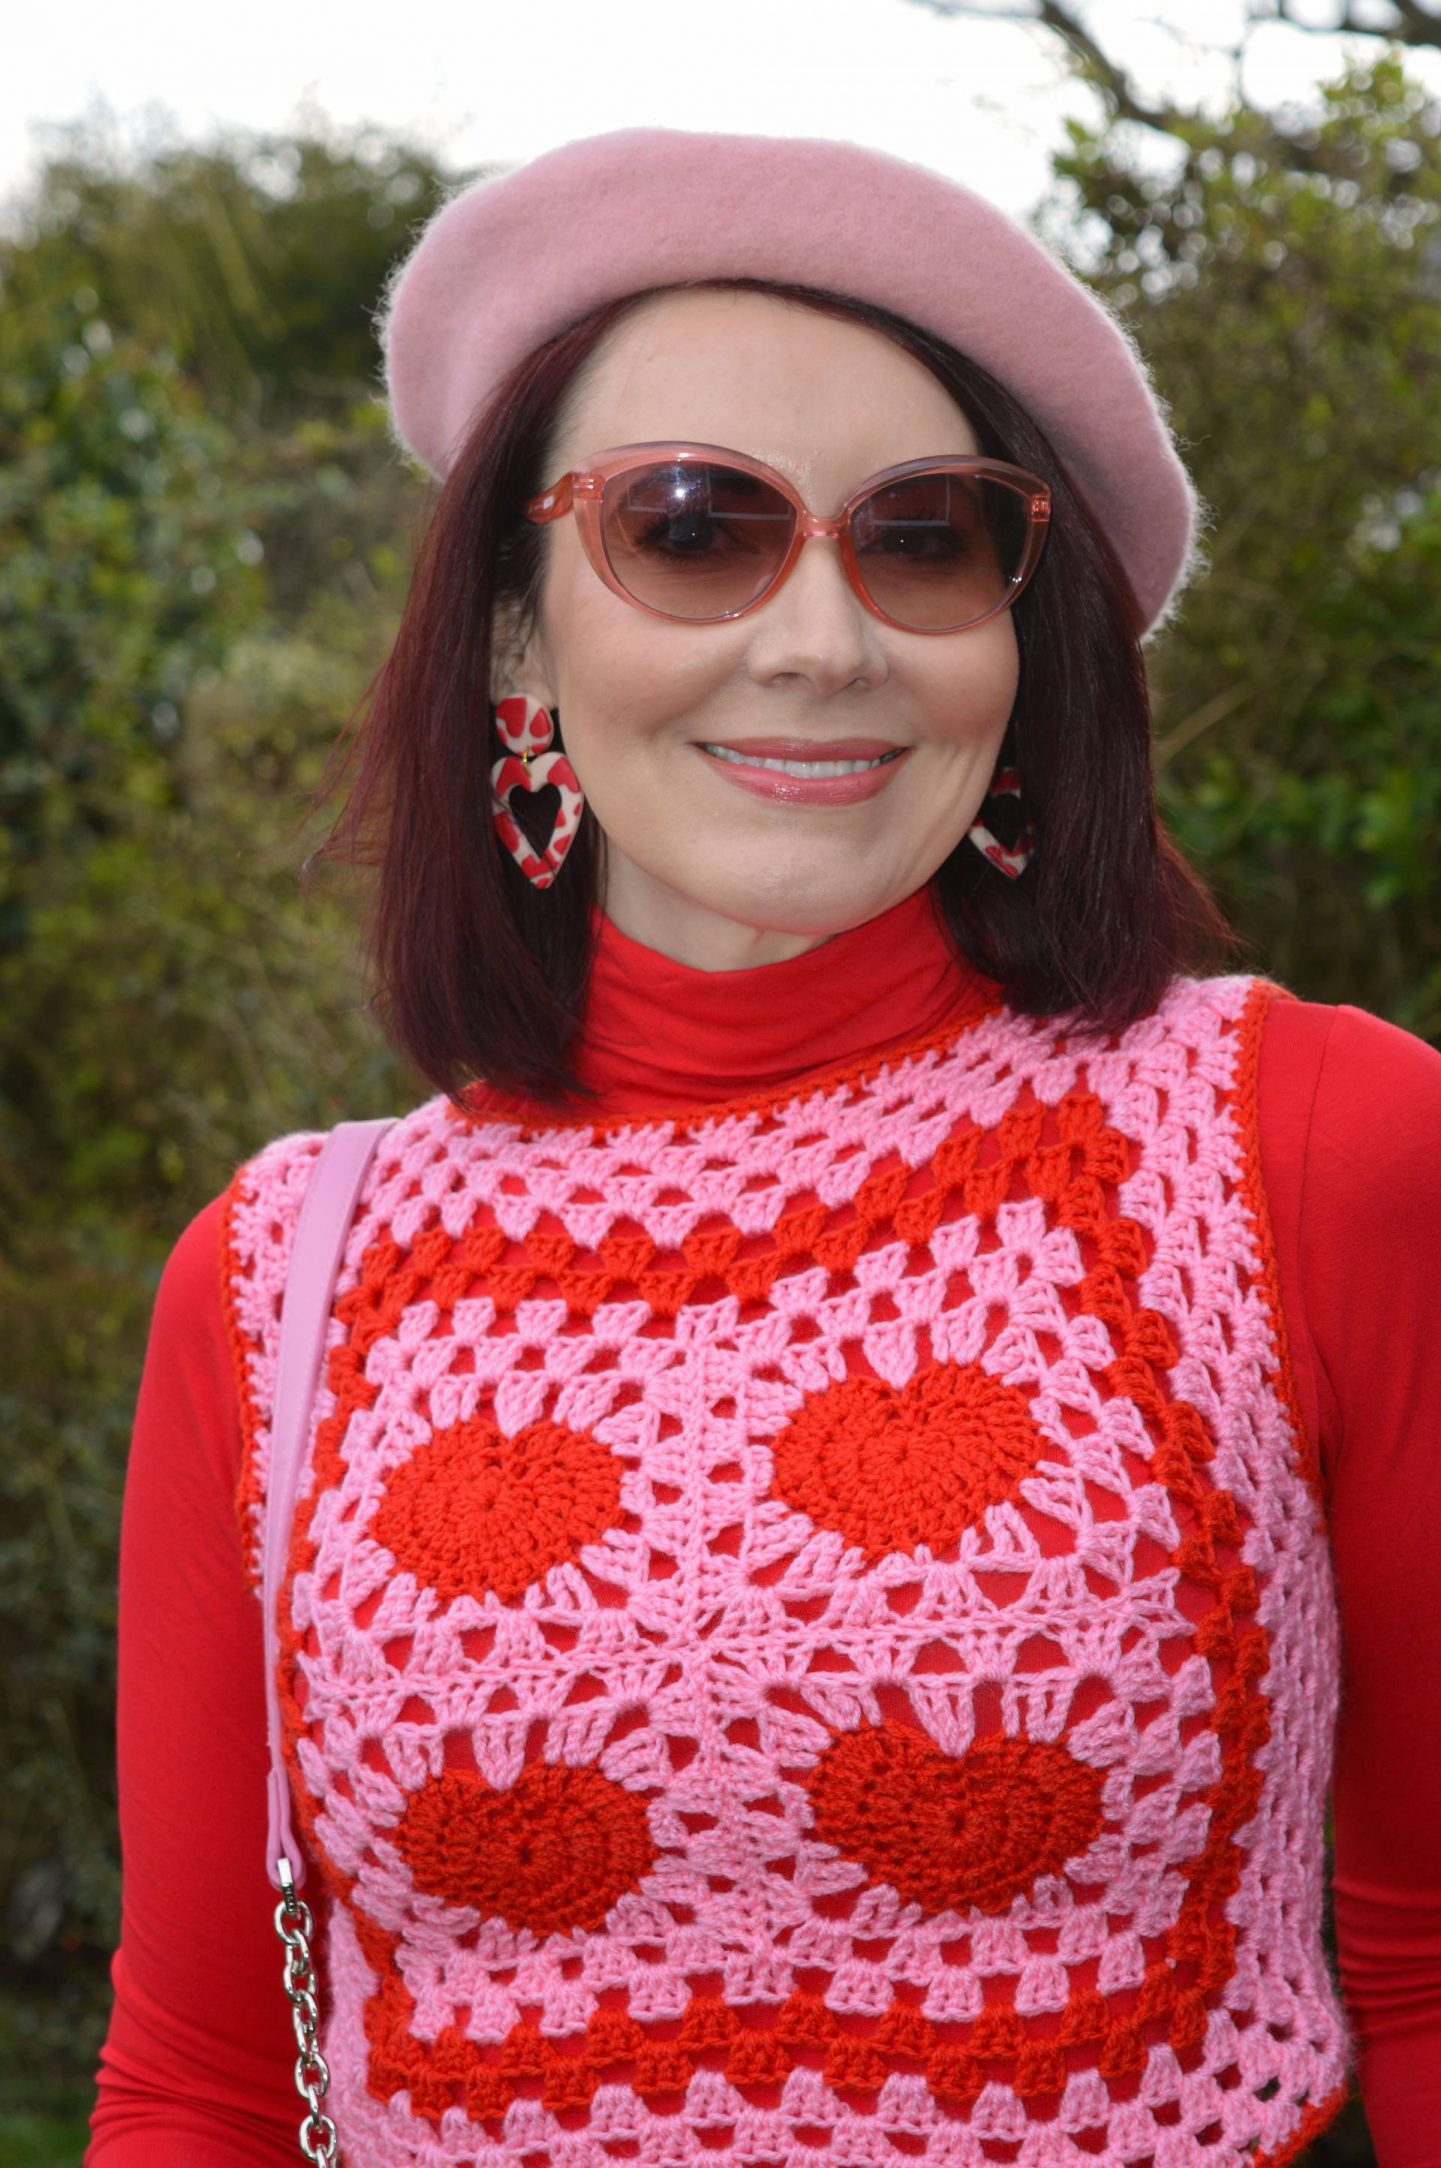 Pink and Bright Red, pink and red heart pattern crocheted vest, Asos pink jewelled beret, Raid red sock boots, pink Moschino cat eye sunglasses